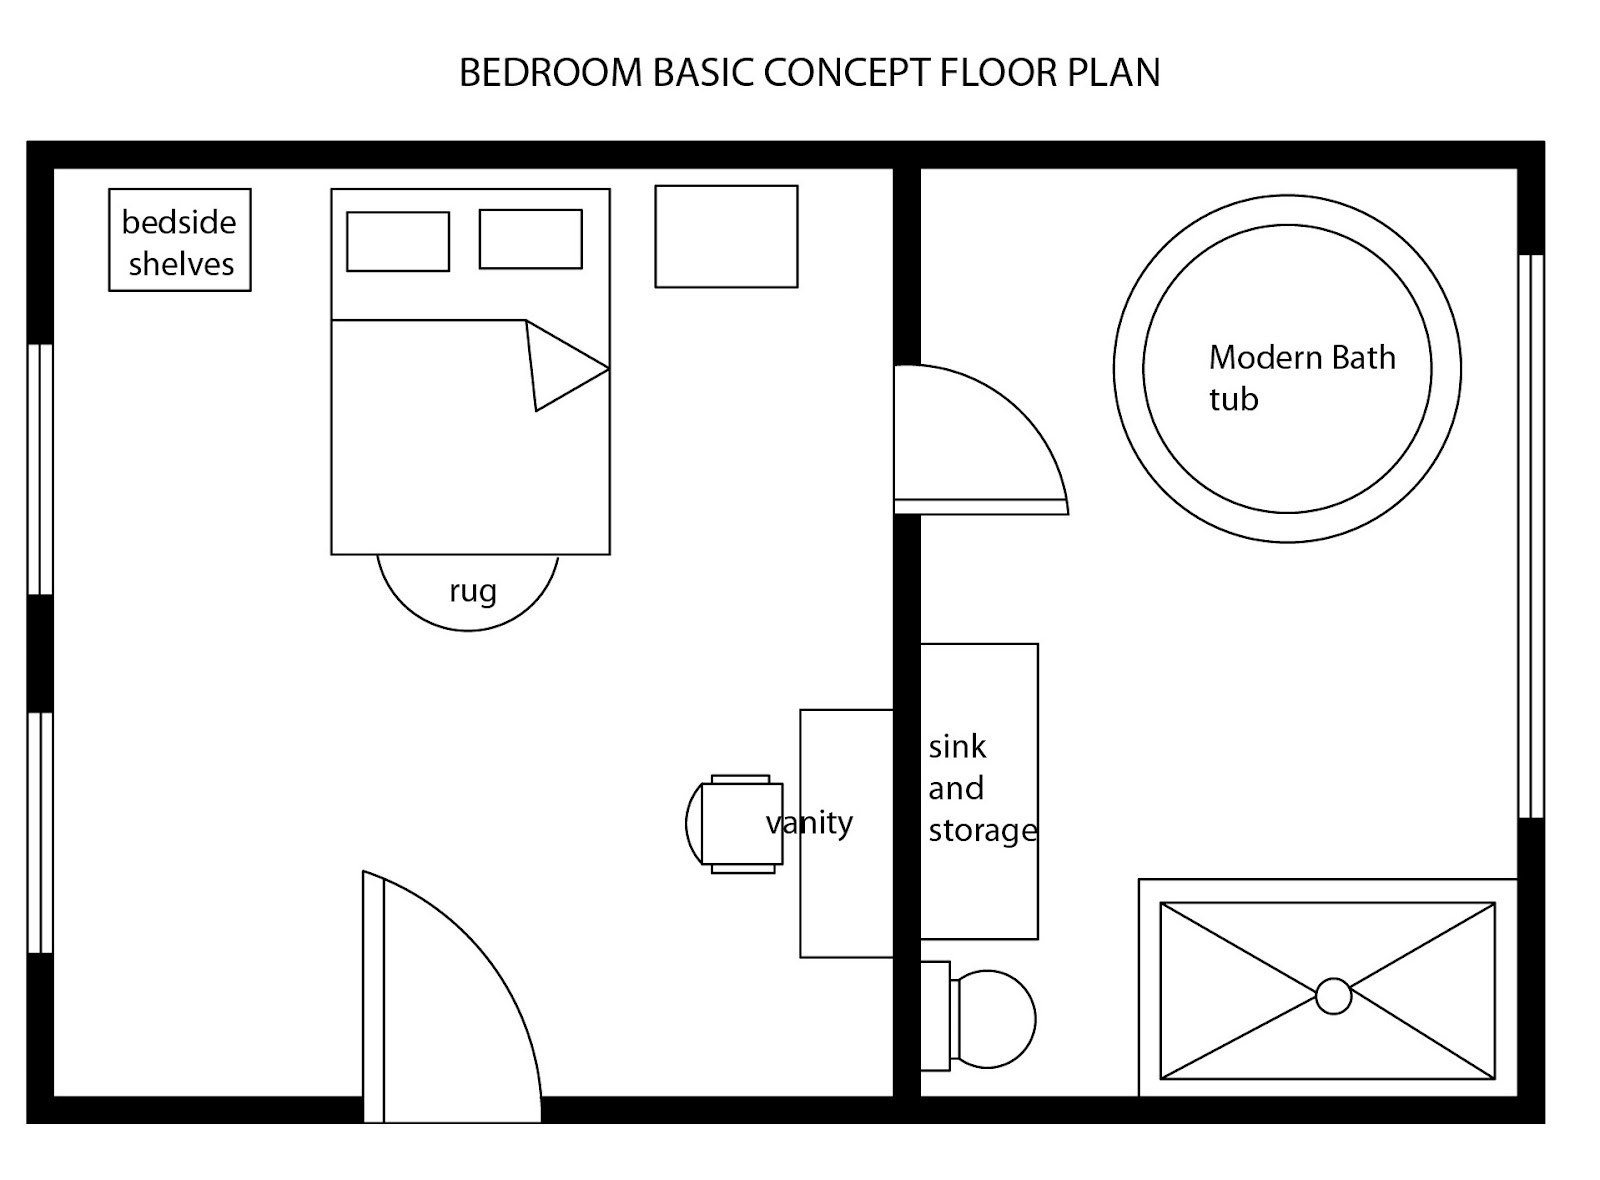 Interior design decor modern bedroom basic floor plan for Modern house layout plan